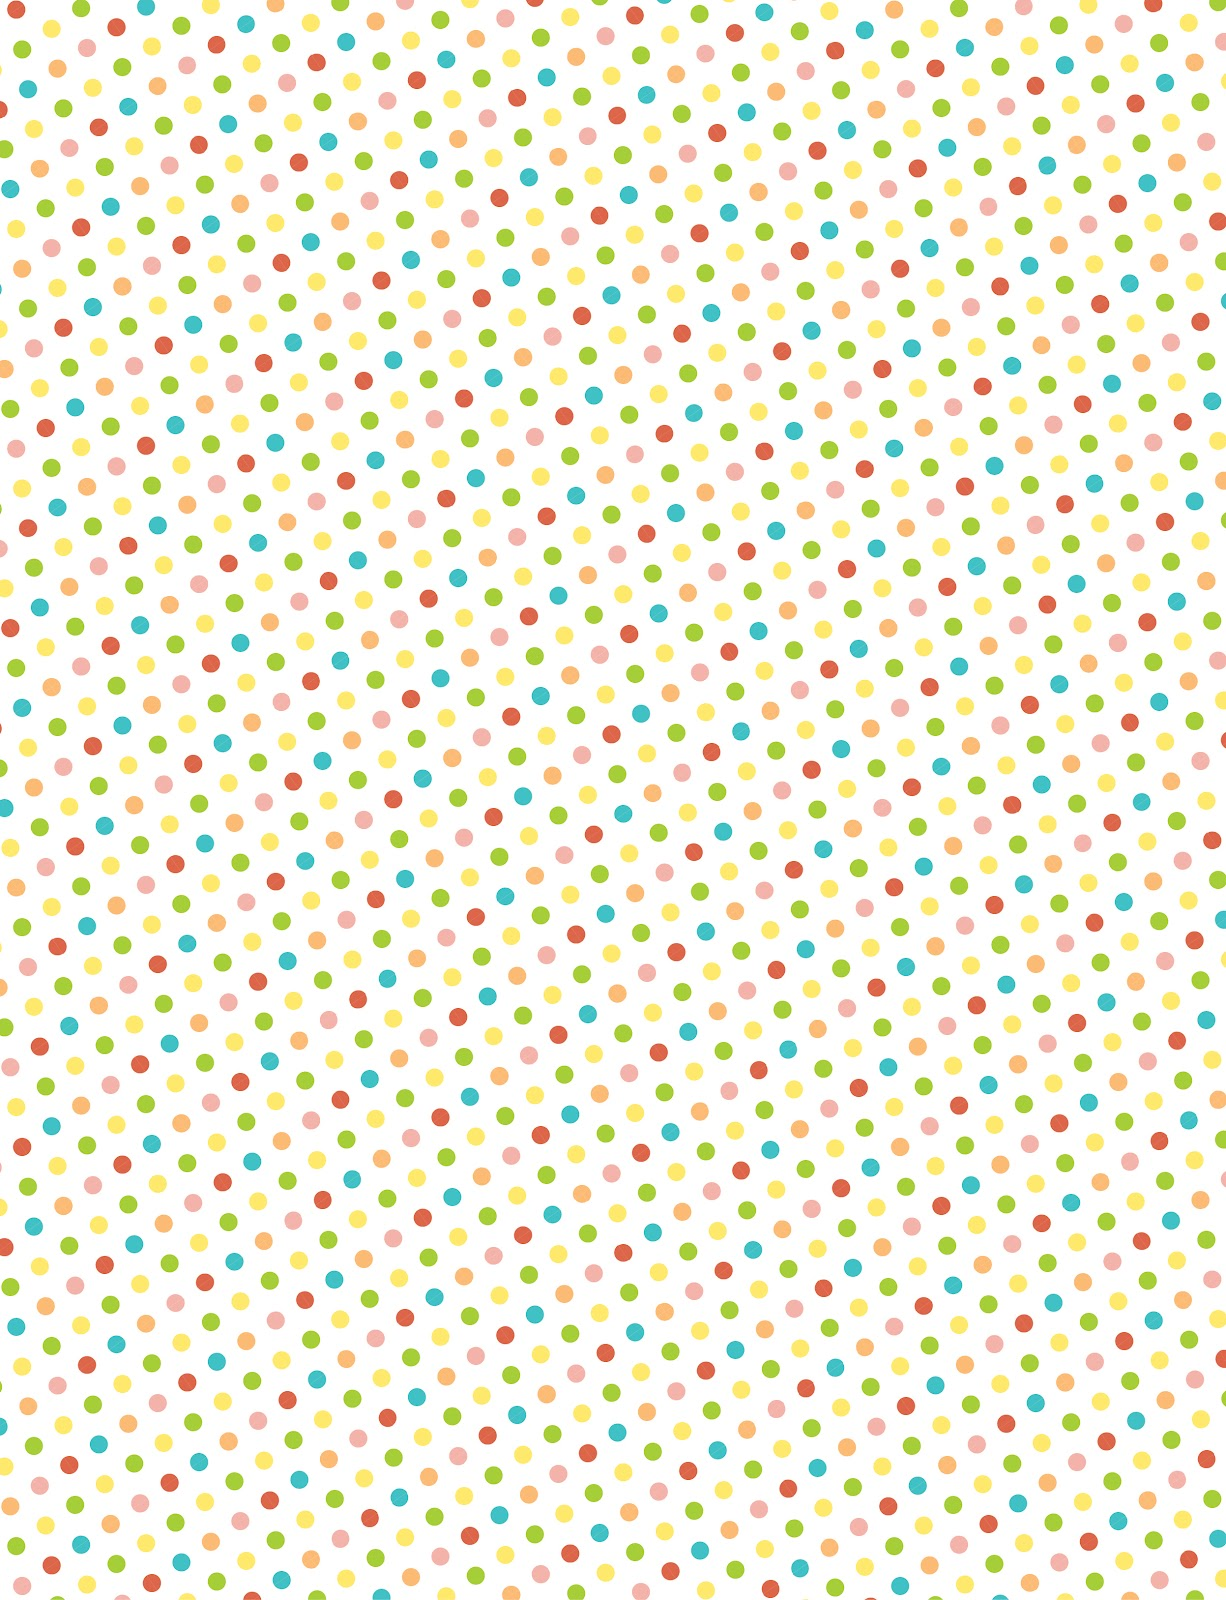 Amy J Delightful Blog Printable Polka Dot Patterns For Making Washi Tape Stickers